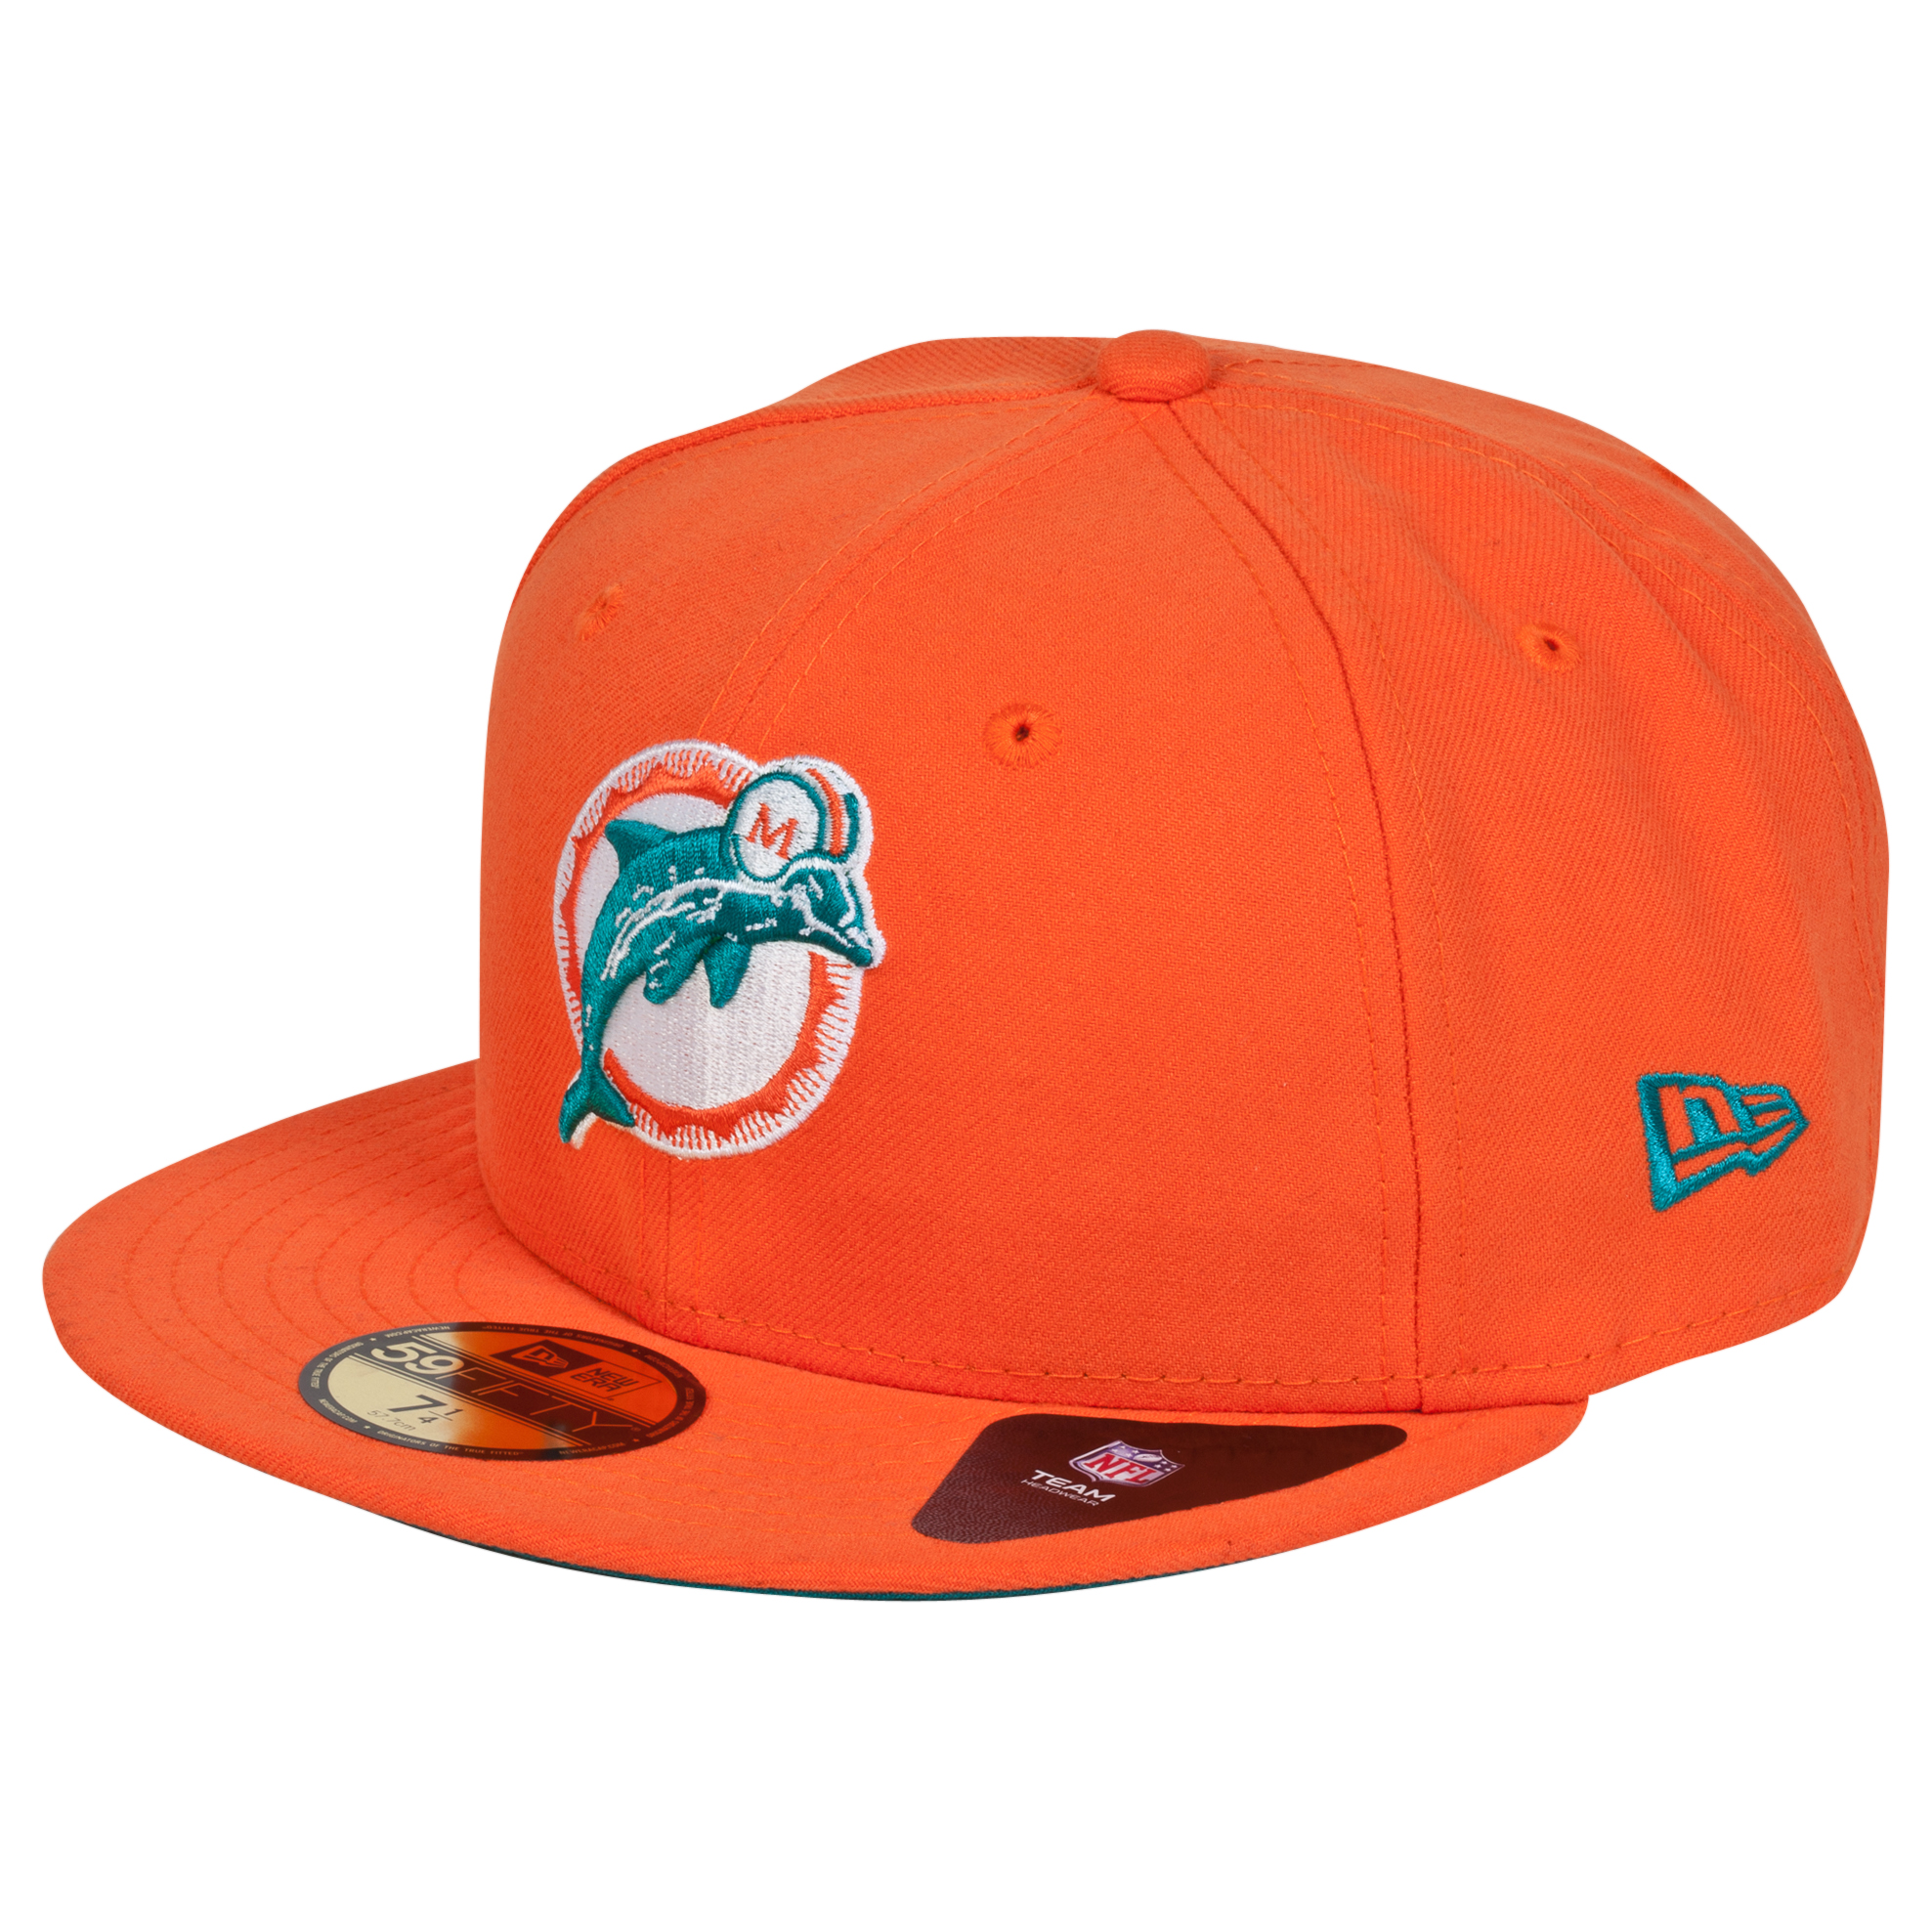 Miami Dolphins New Era 59FIFTY SB Side Patch Super Bowl VIII Fitted Cap